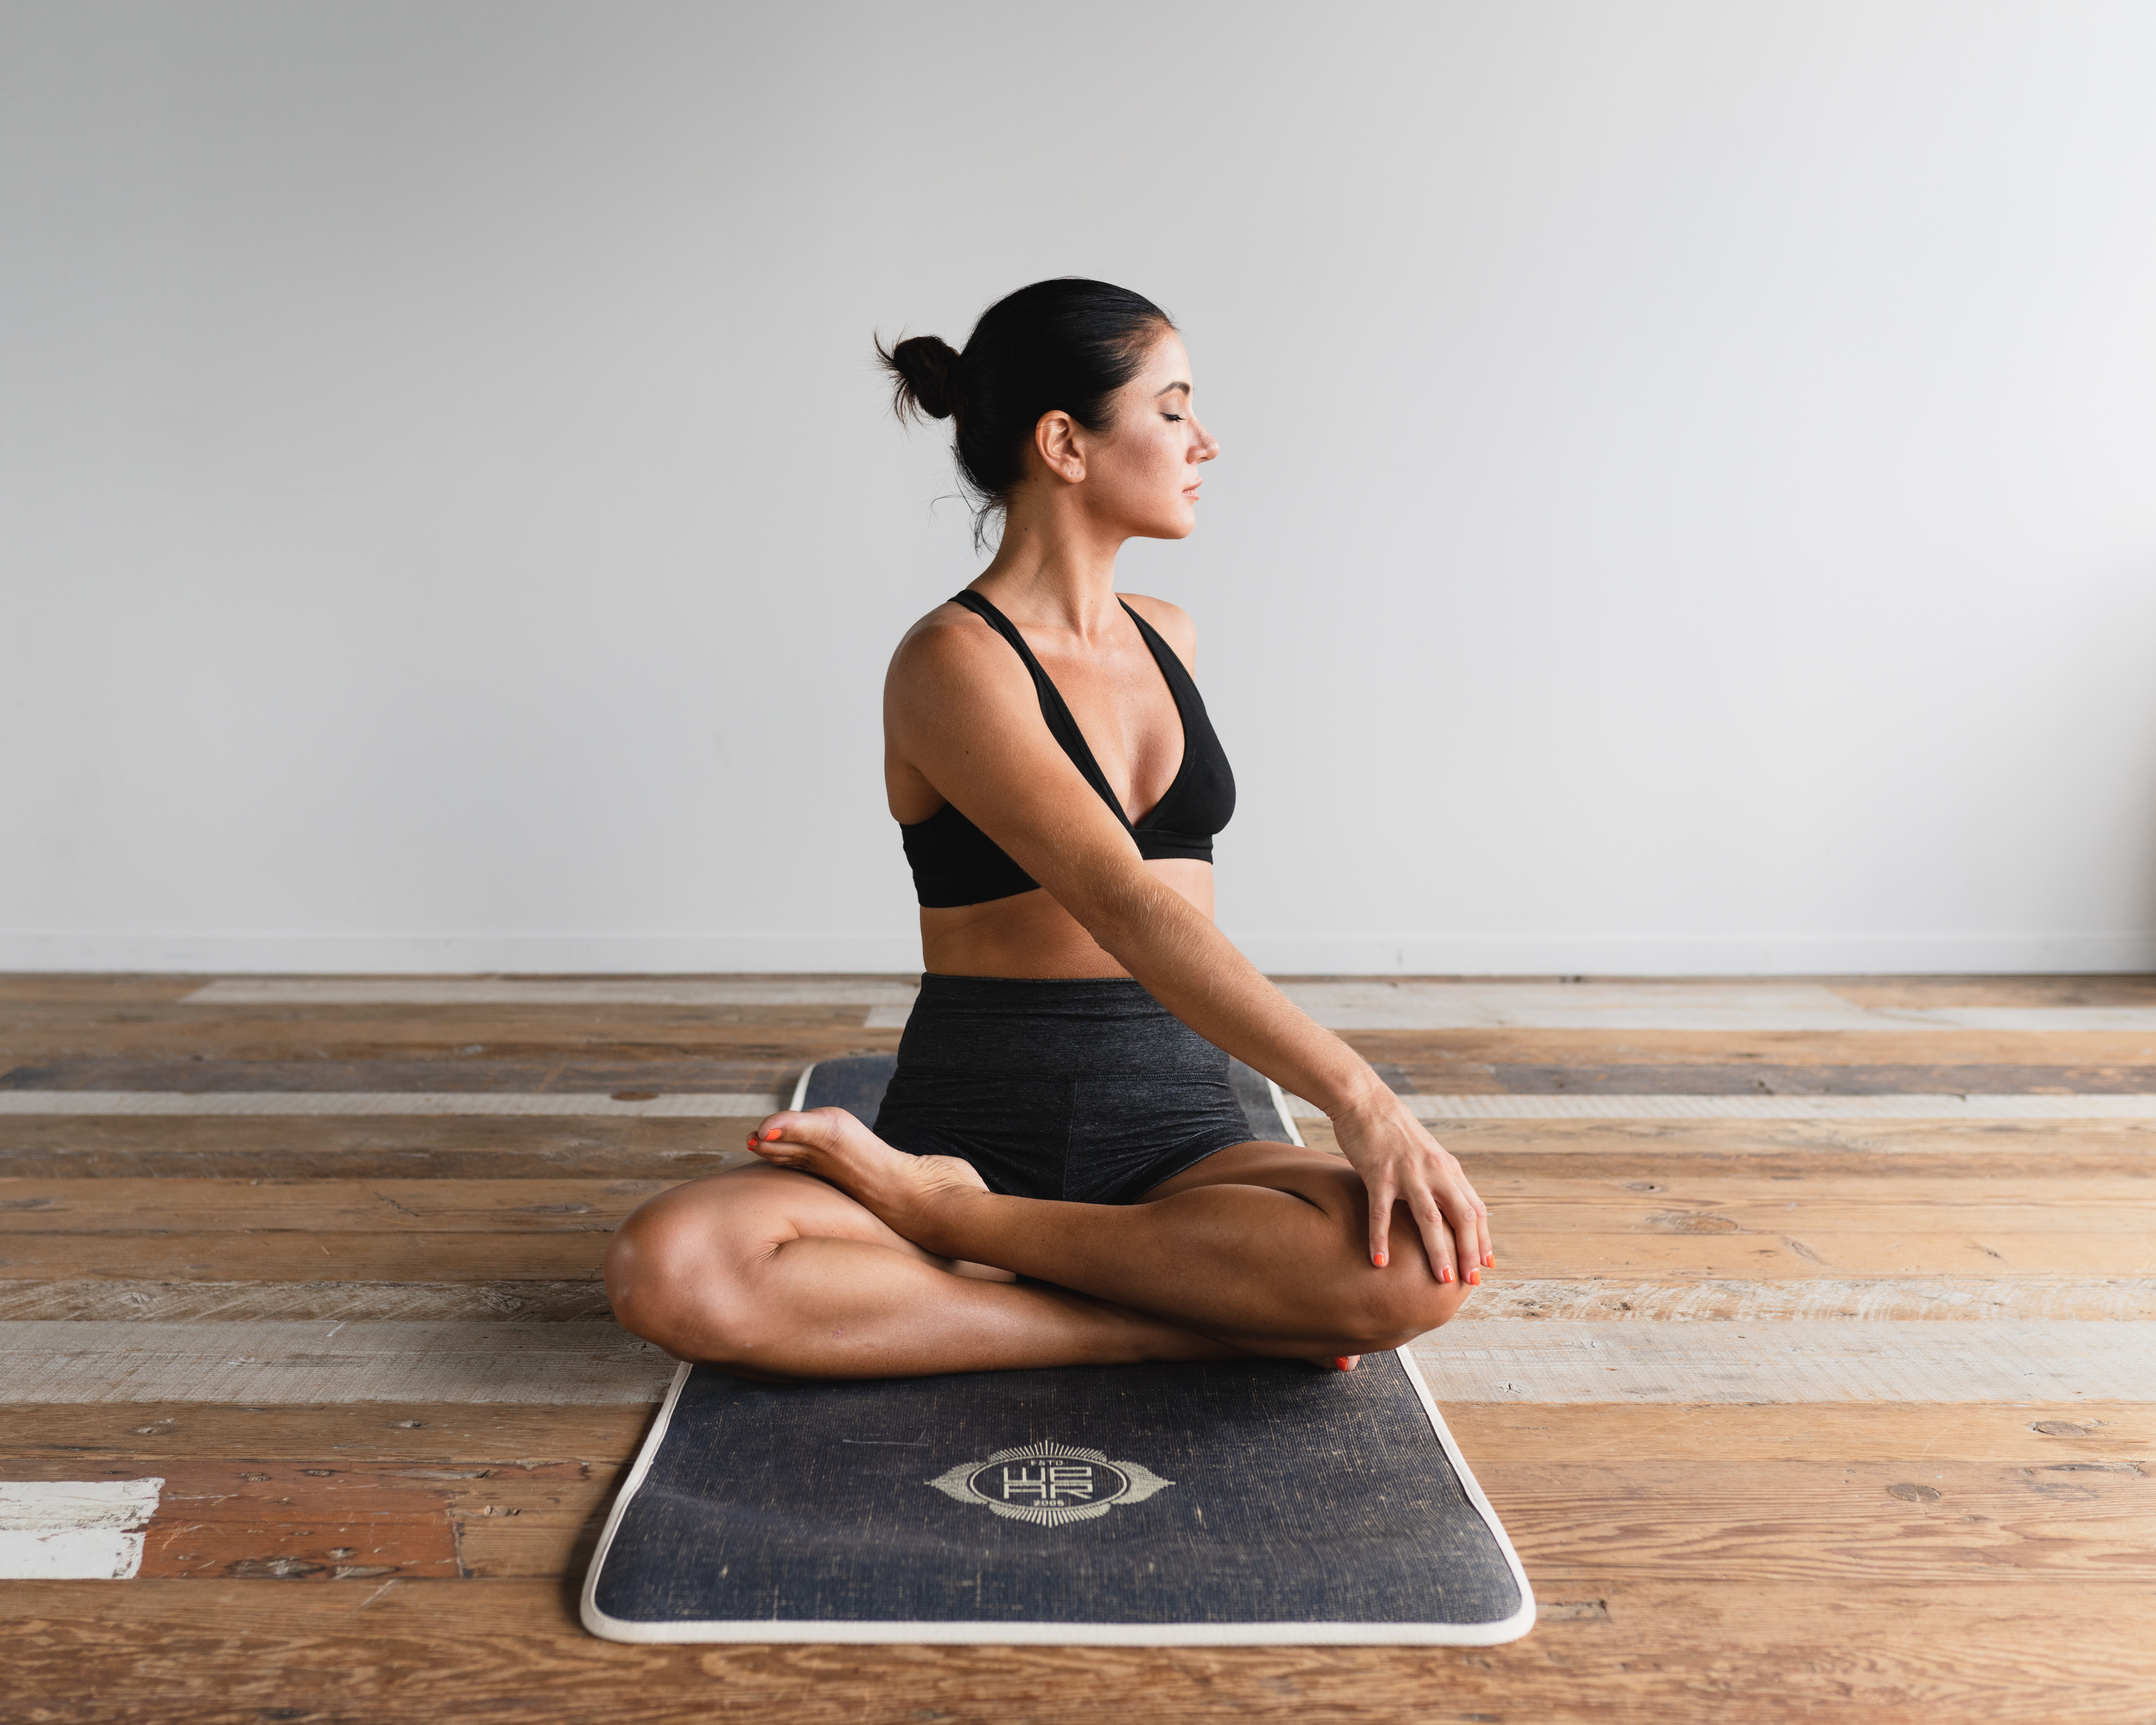 A woman doing yoga on a mat indoors.